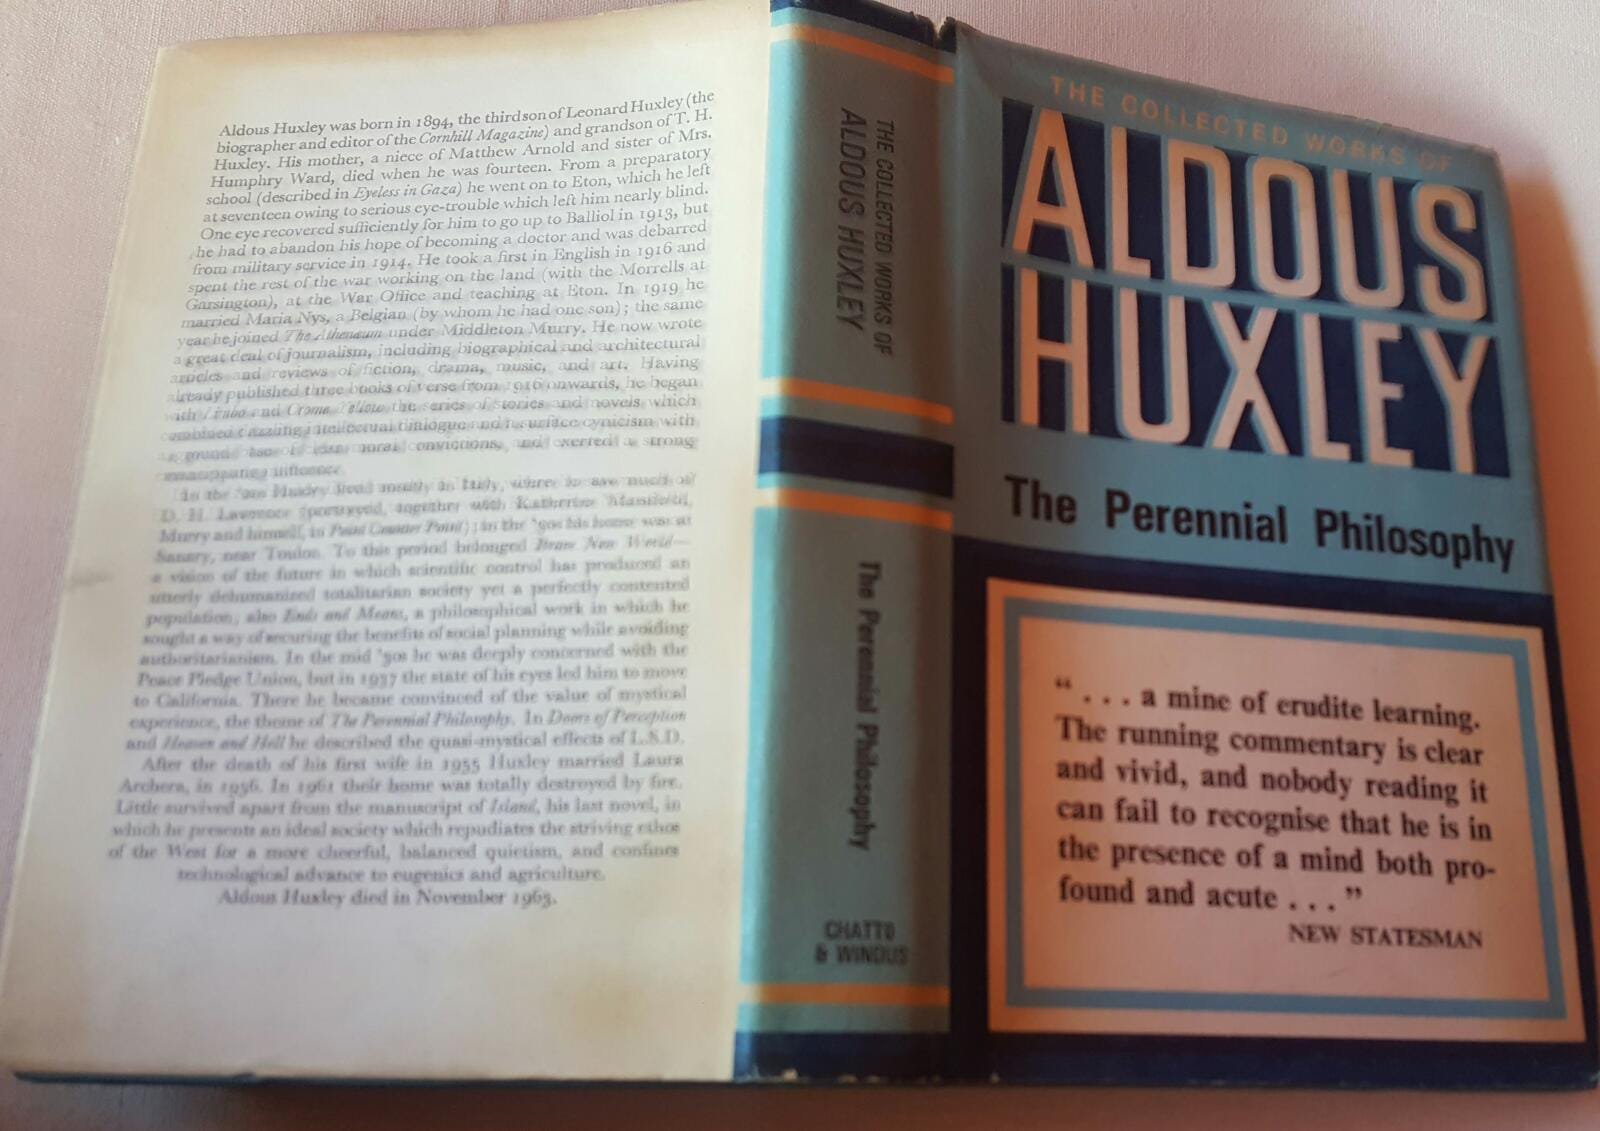 The Perennial Philosophy (The Collected Works of Aldous Huxley) - Aldous Huxley